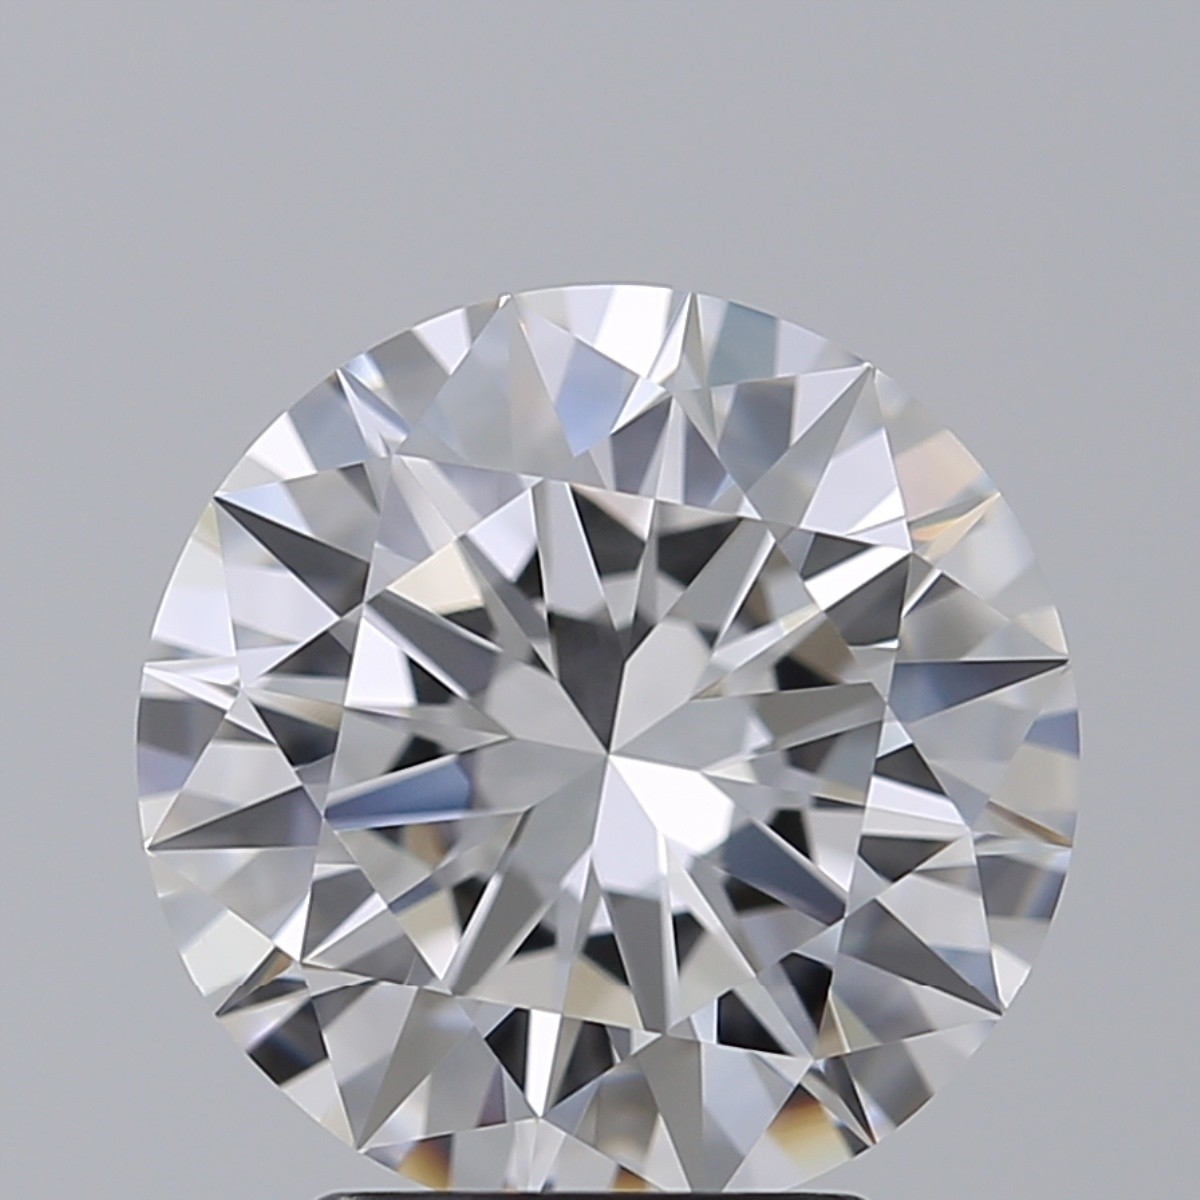 3.01 Carat Round Brilliant Diamond (D/FL)